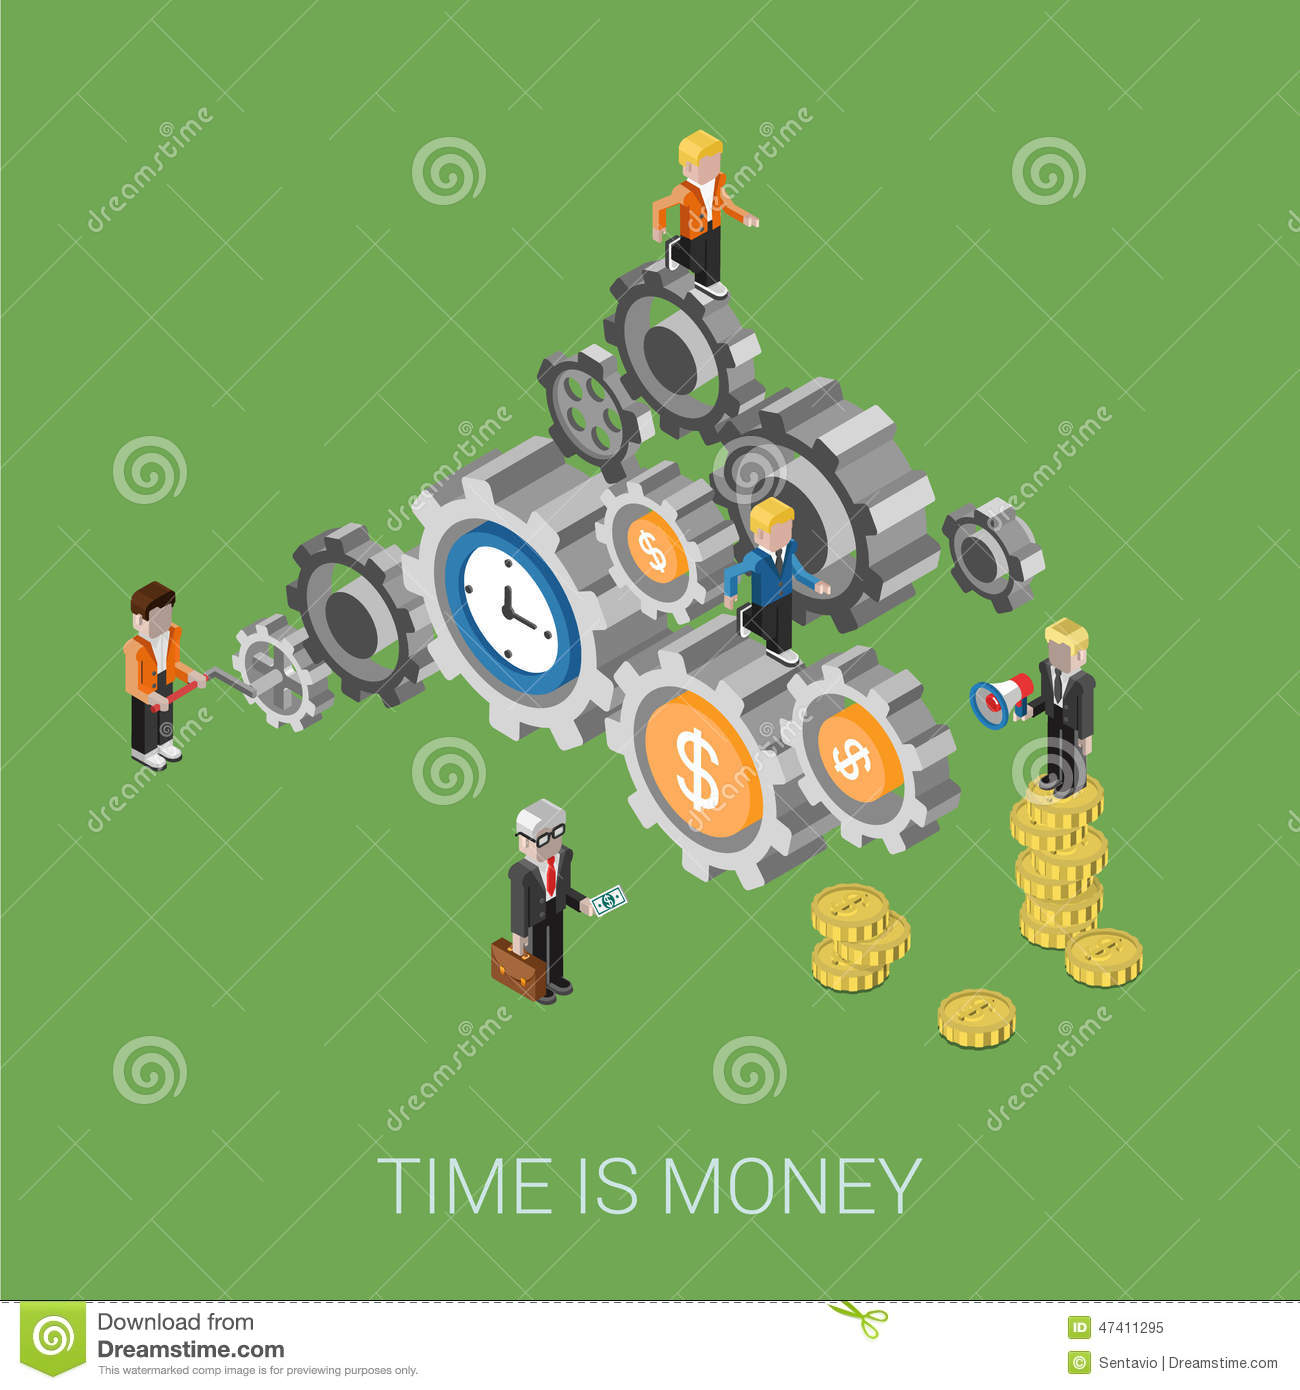 Flat 3d isometric style modern time is money infographic concept